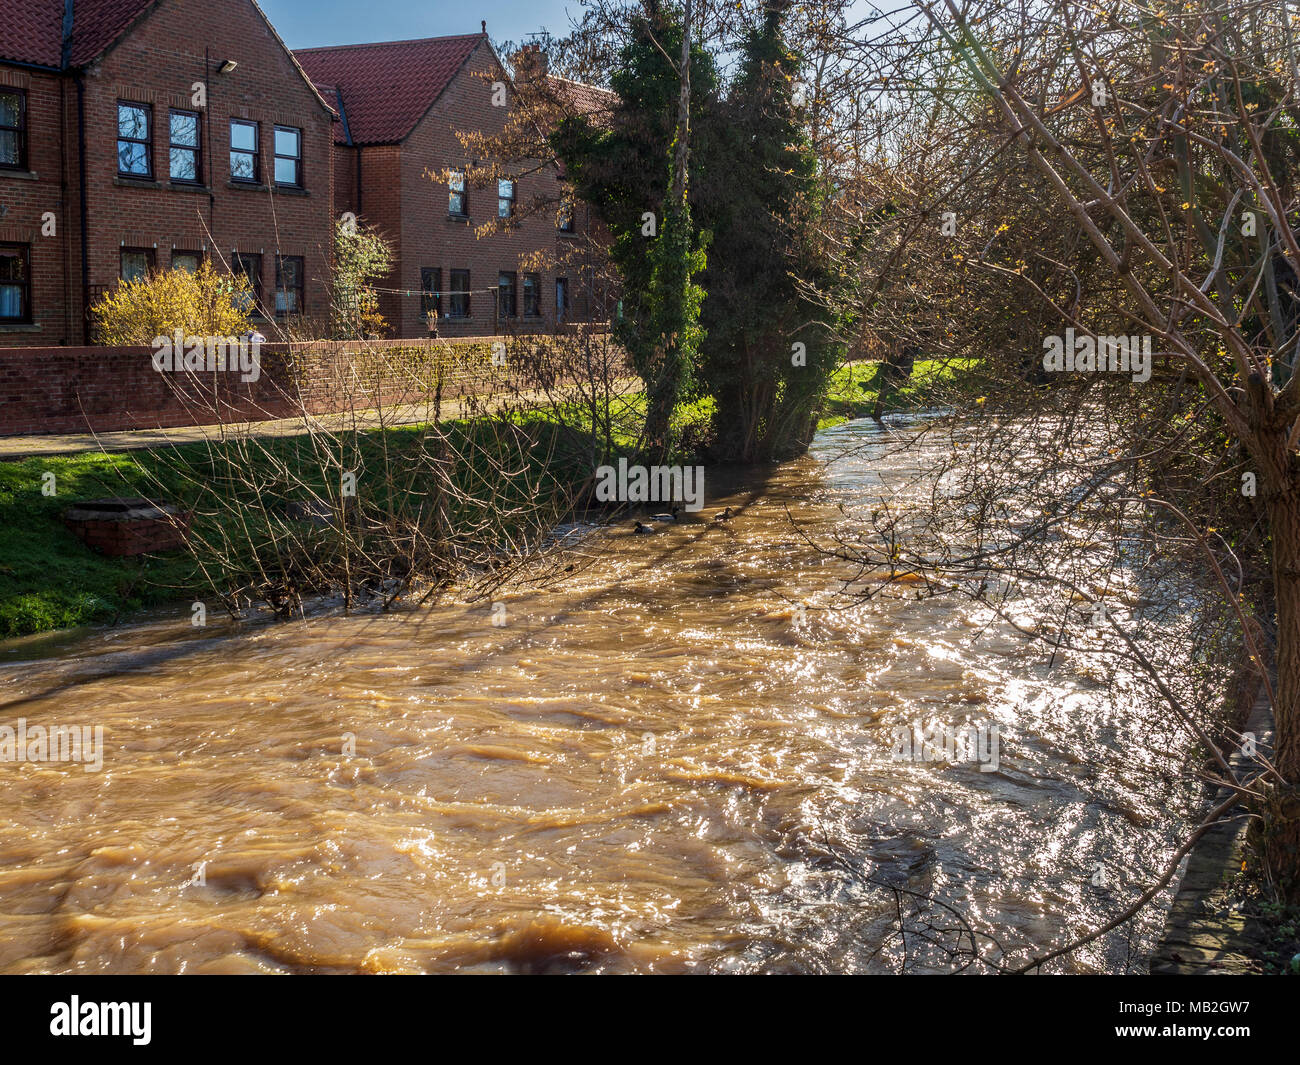 High water level at Cod Beck, Thirsk, North Yorkshire, UK. - Stock Image